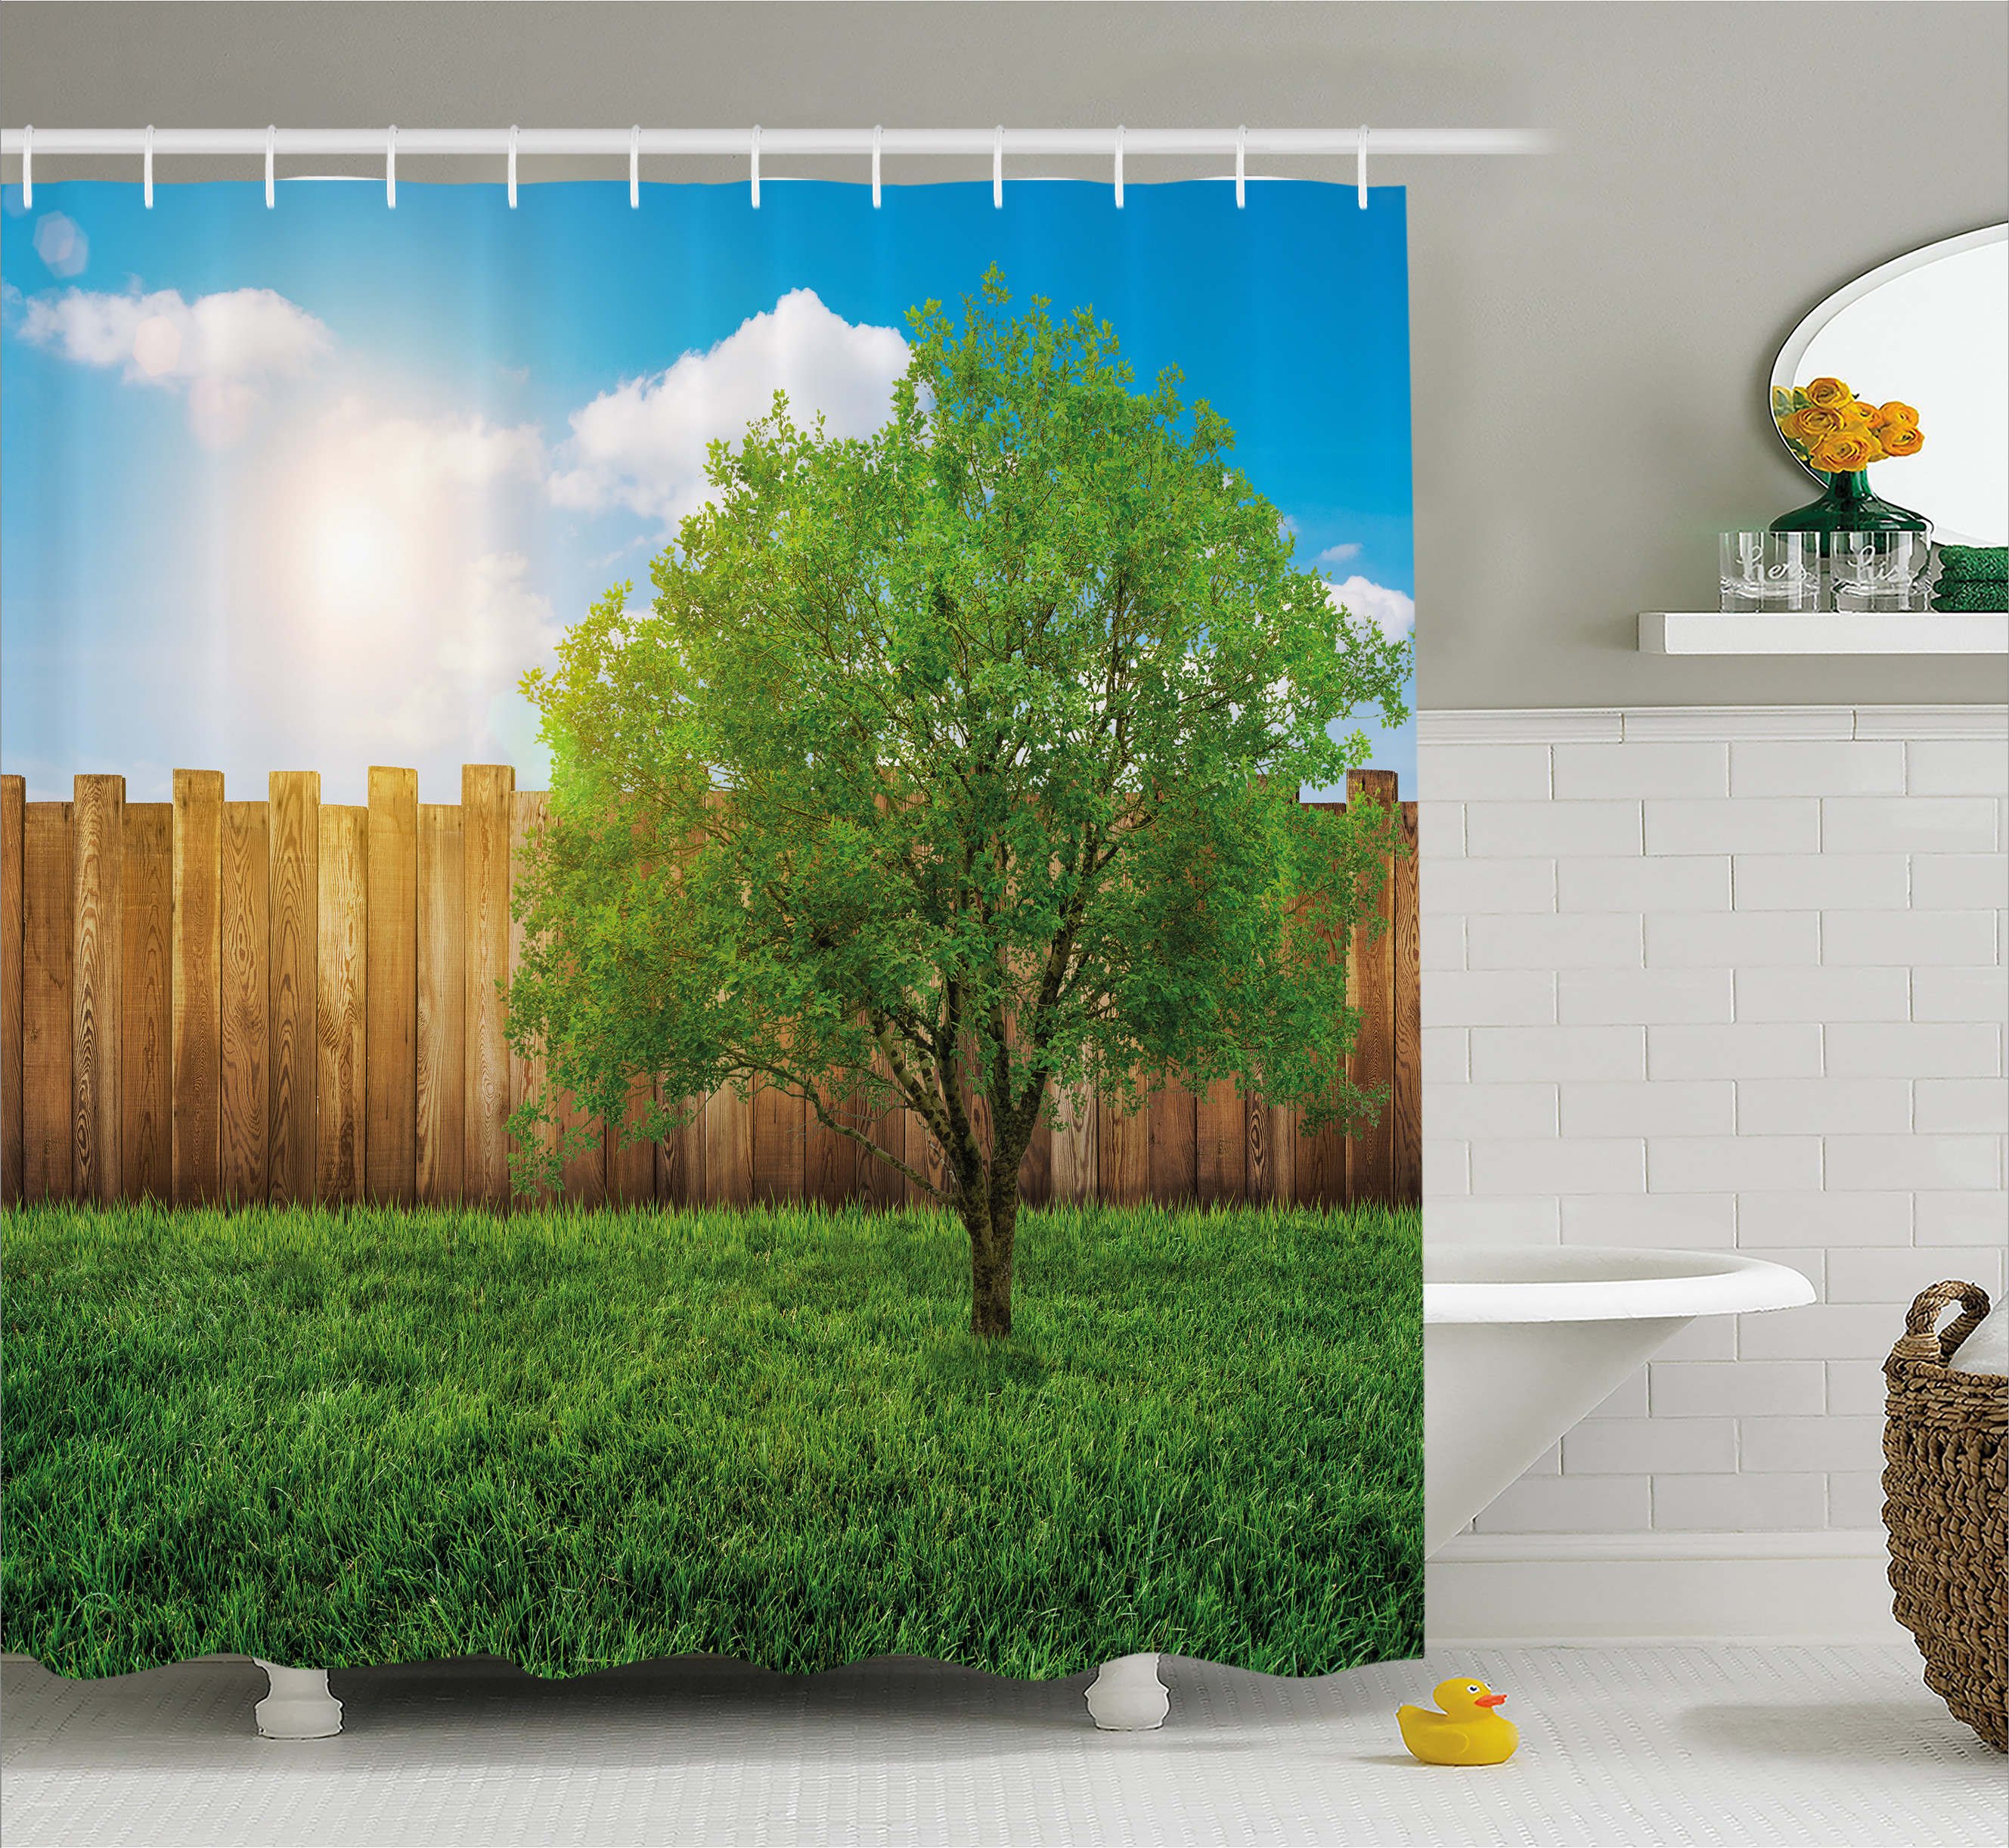 Farm House Decor Shower Curtain, Tree of Life in Backyard of a Countryhouse with Sun Tranquil Field Design, Fabric Bathroom Set with Hooks, 69W X 84L Inches Extra Long, Green Blue, by Ambesonne